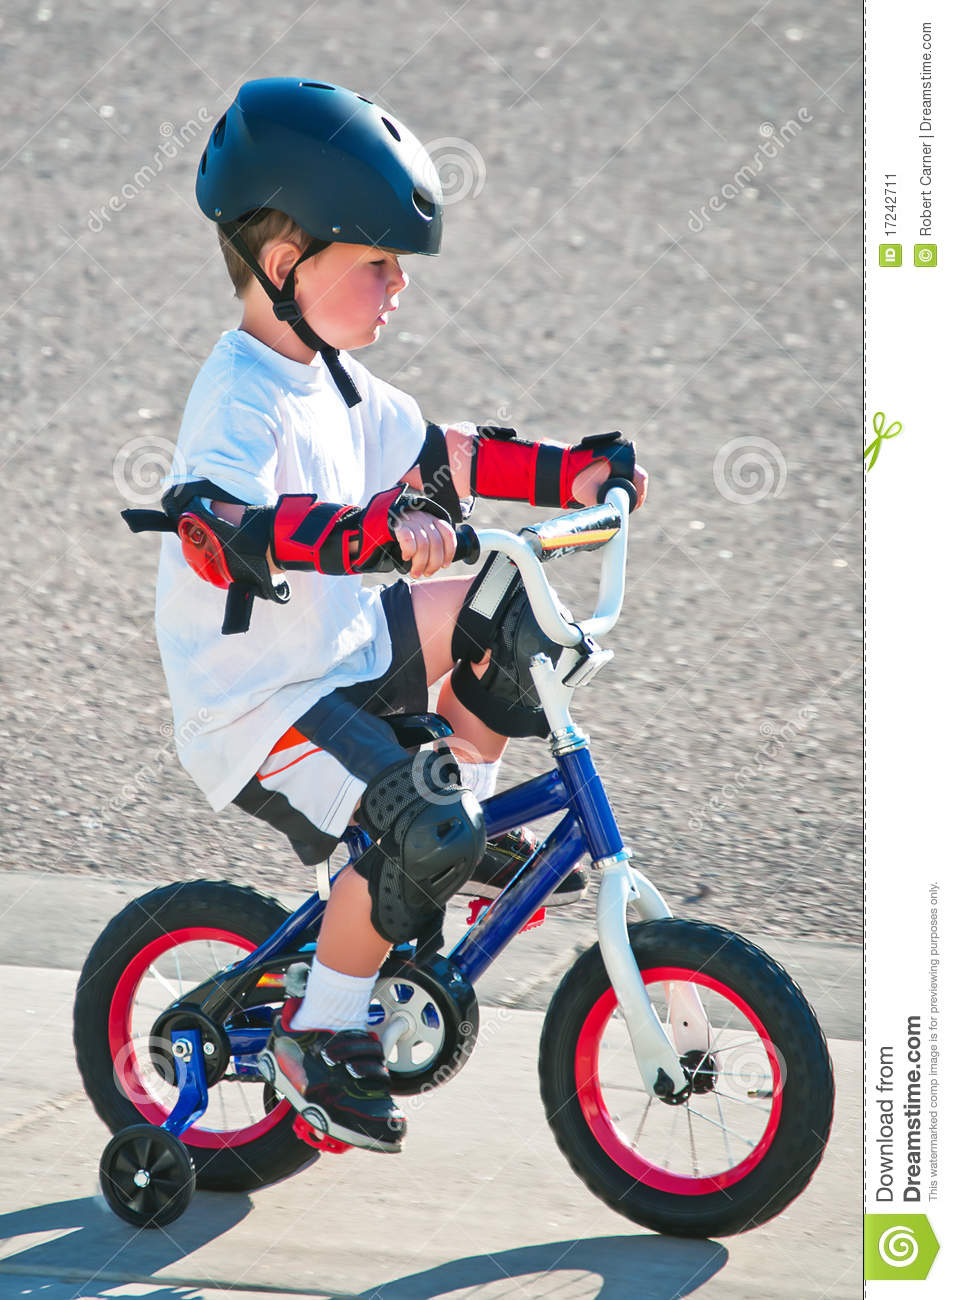 learning to ride a bike to Riding a bike is an important milestone for kids learn at what age children are ready for this step and types of bikes and training method they need.